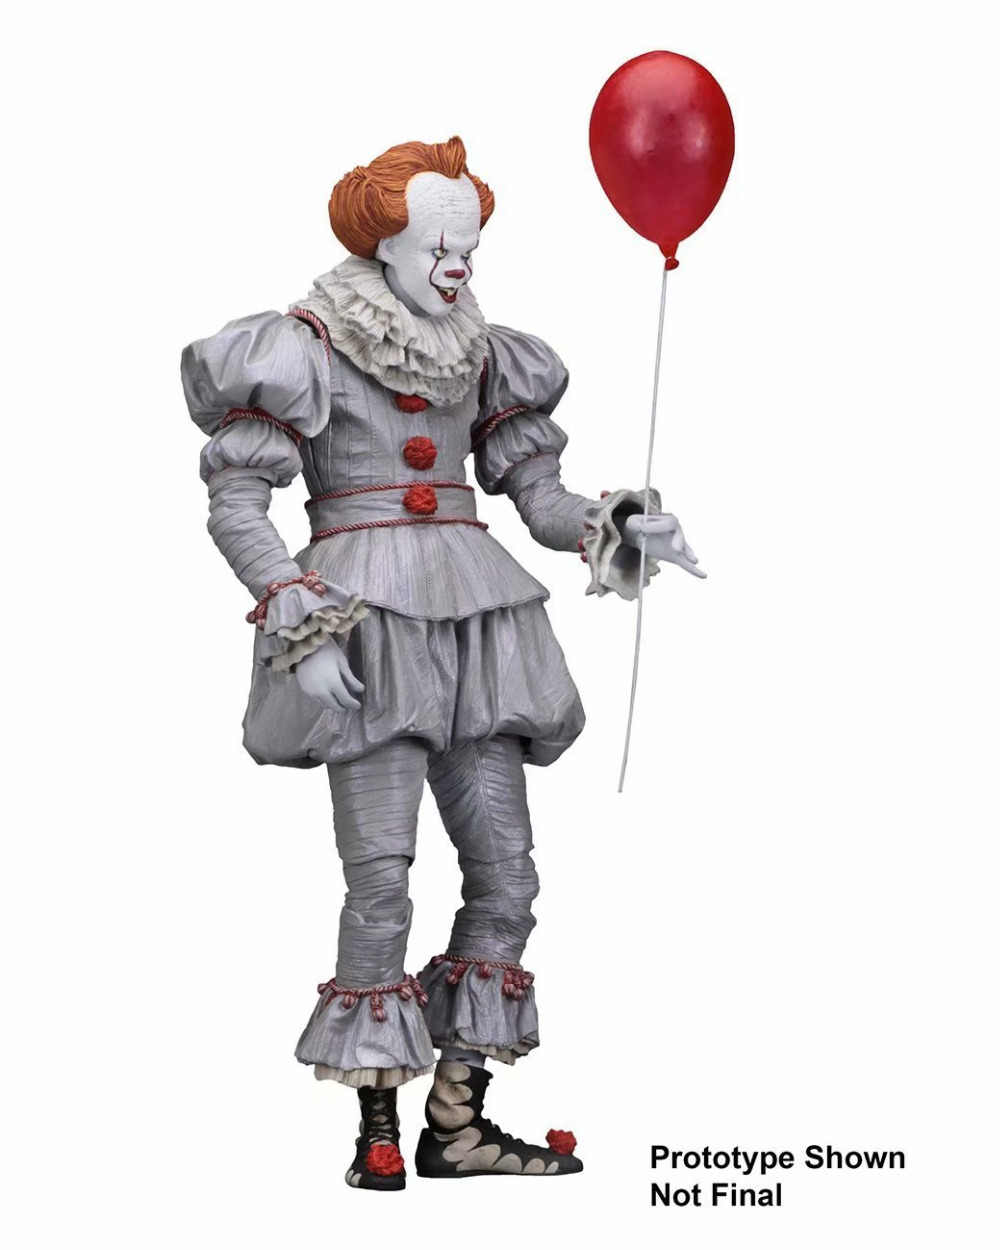 18cm pvc anime figure 스티븐 킹스 이블 조커 the clown pennywise 피겨 모델 완구 2017 공포 팬들을위한 collectible gifts